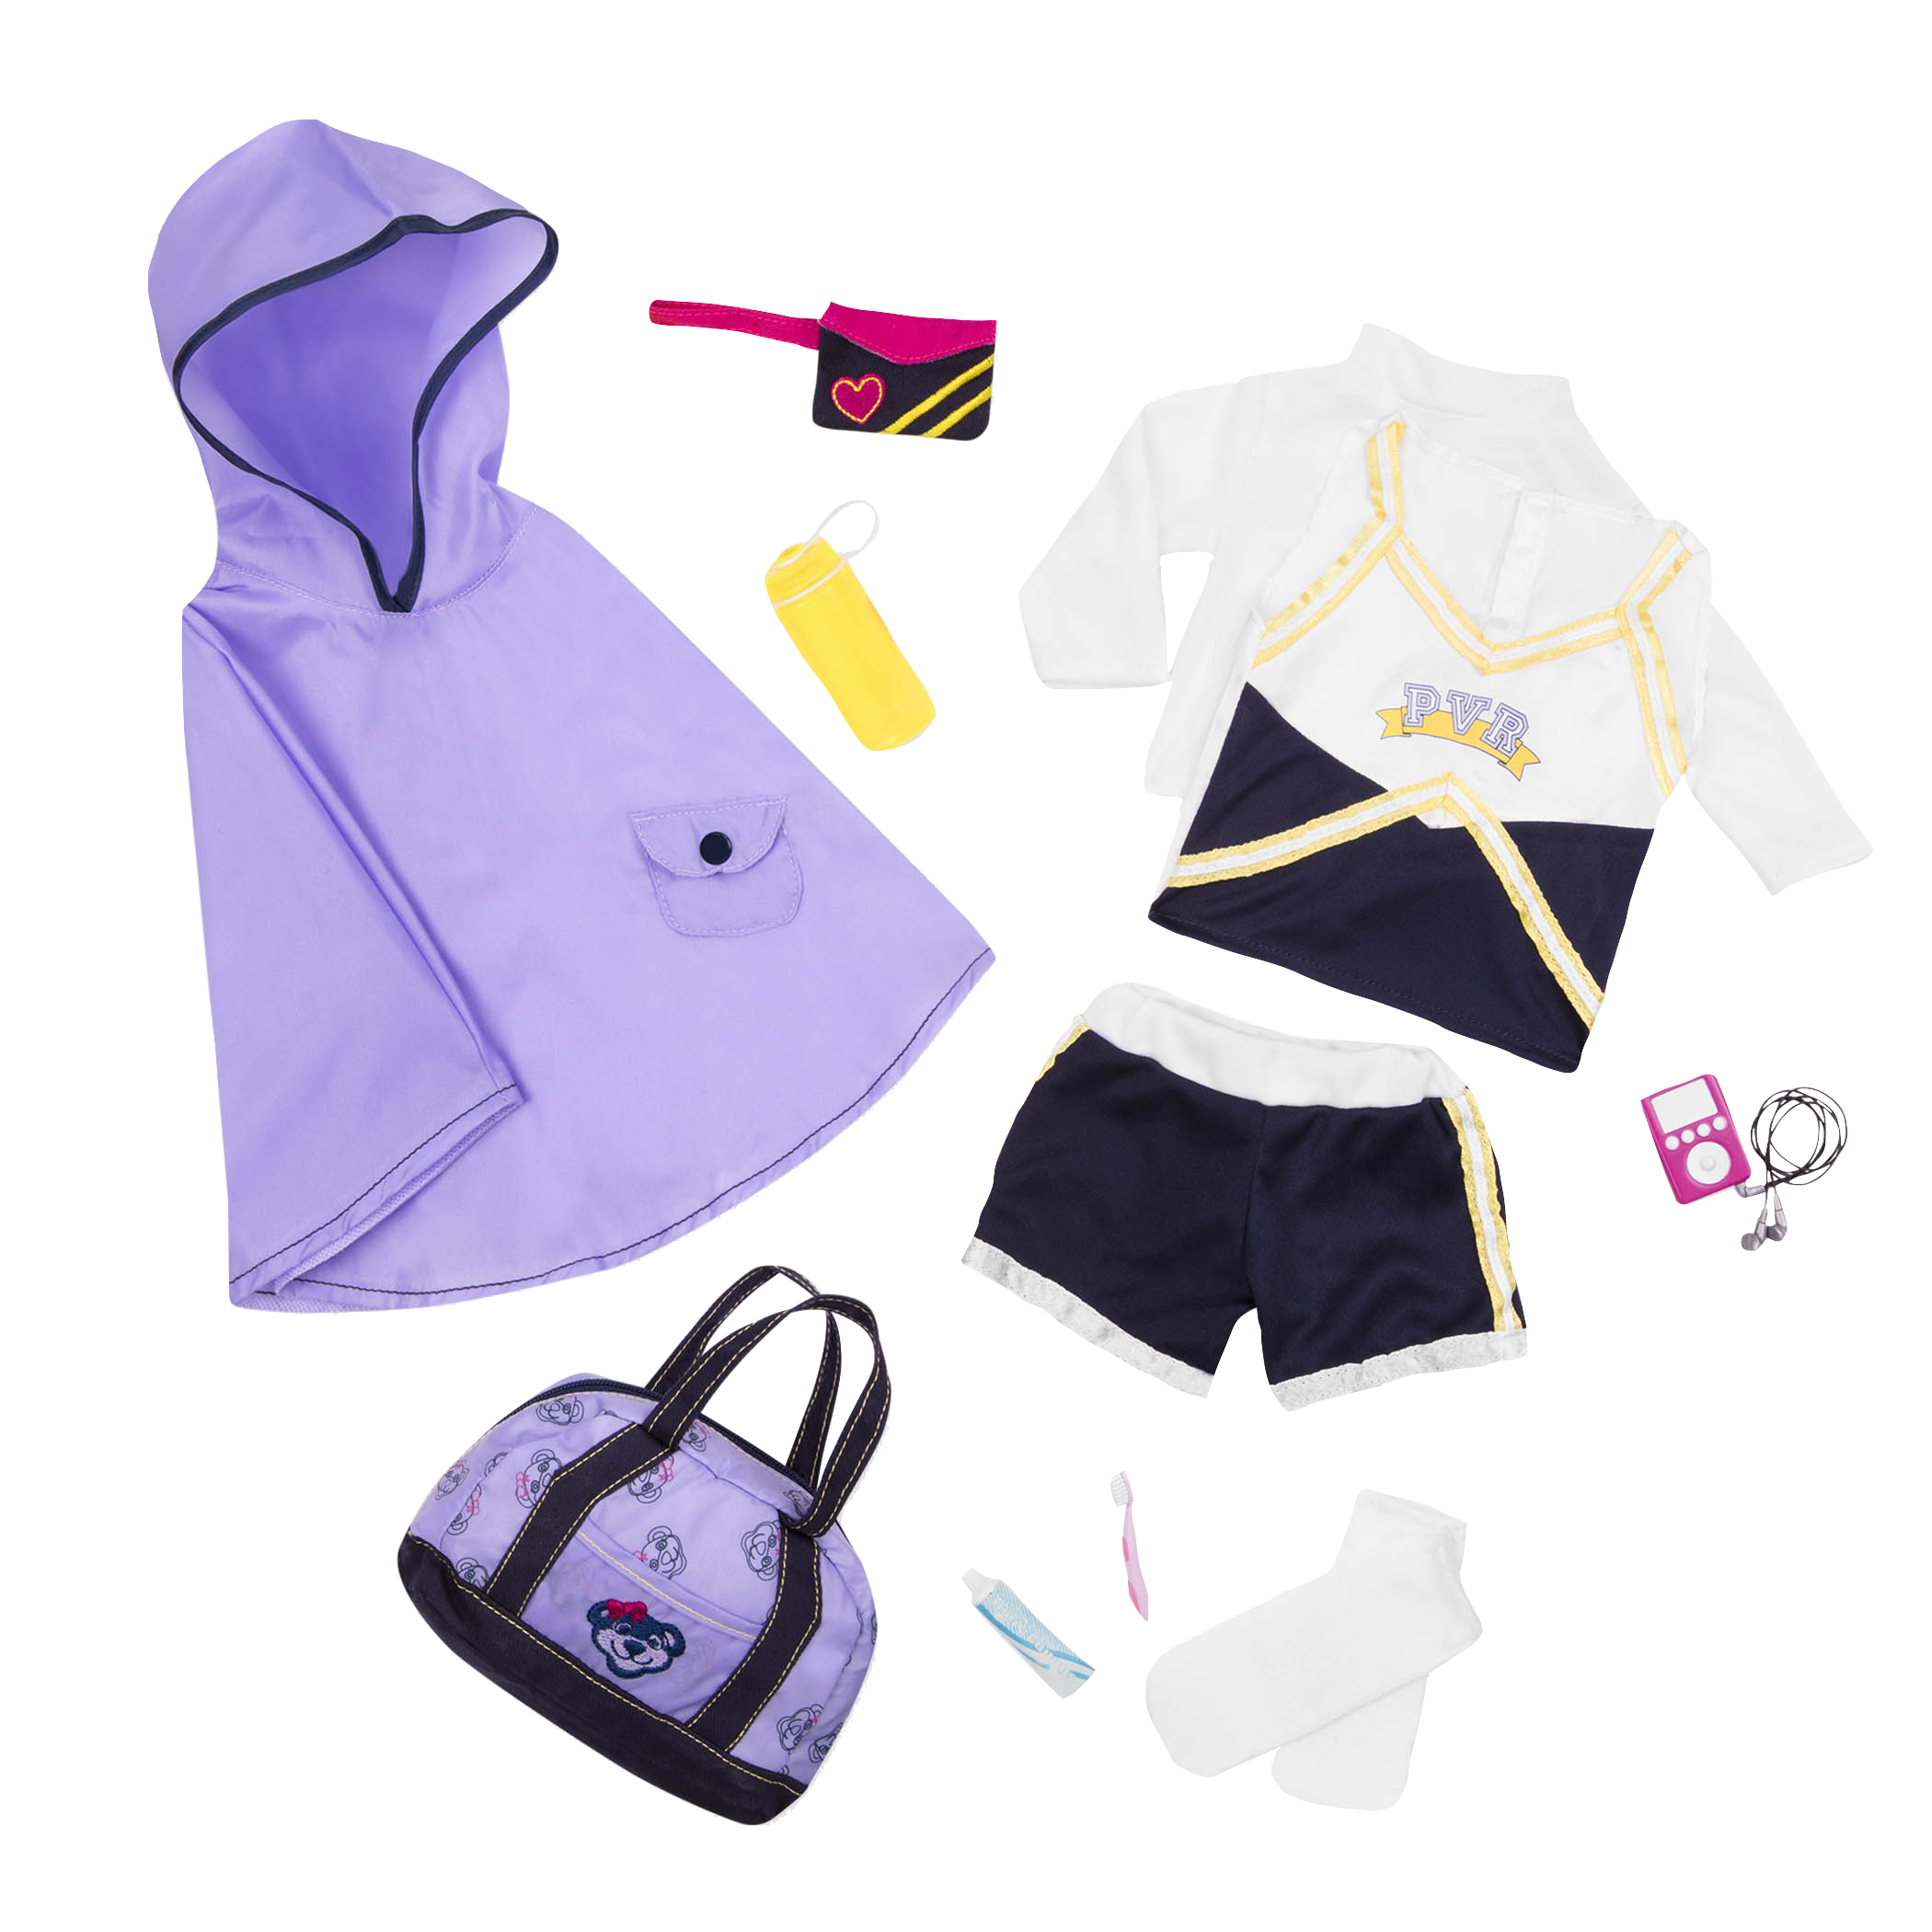 Cheerleader Camp Set all components